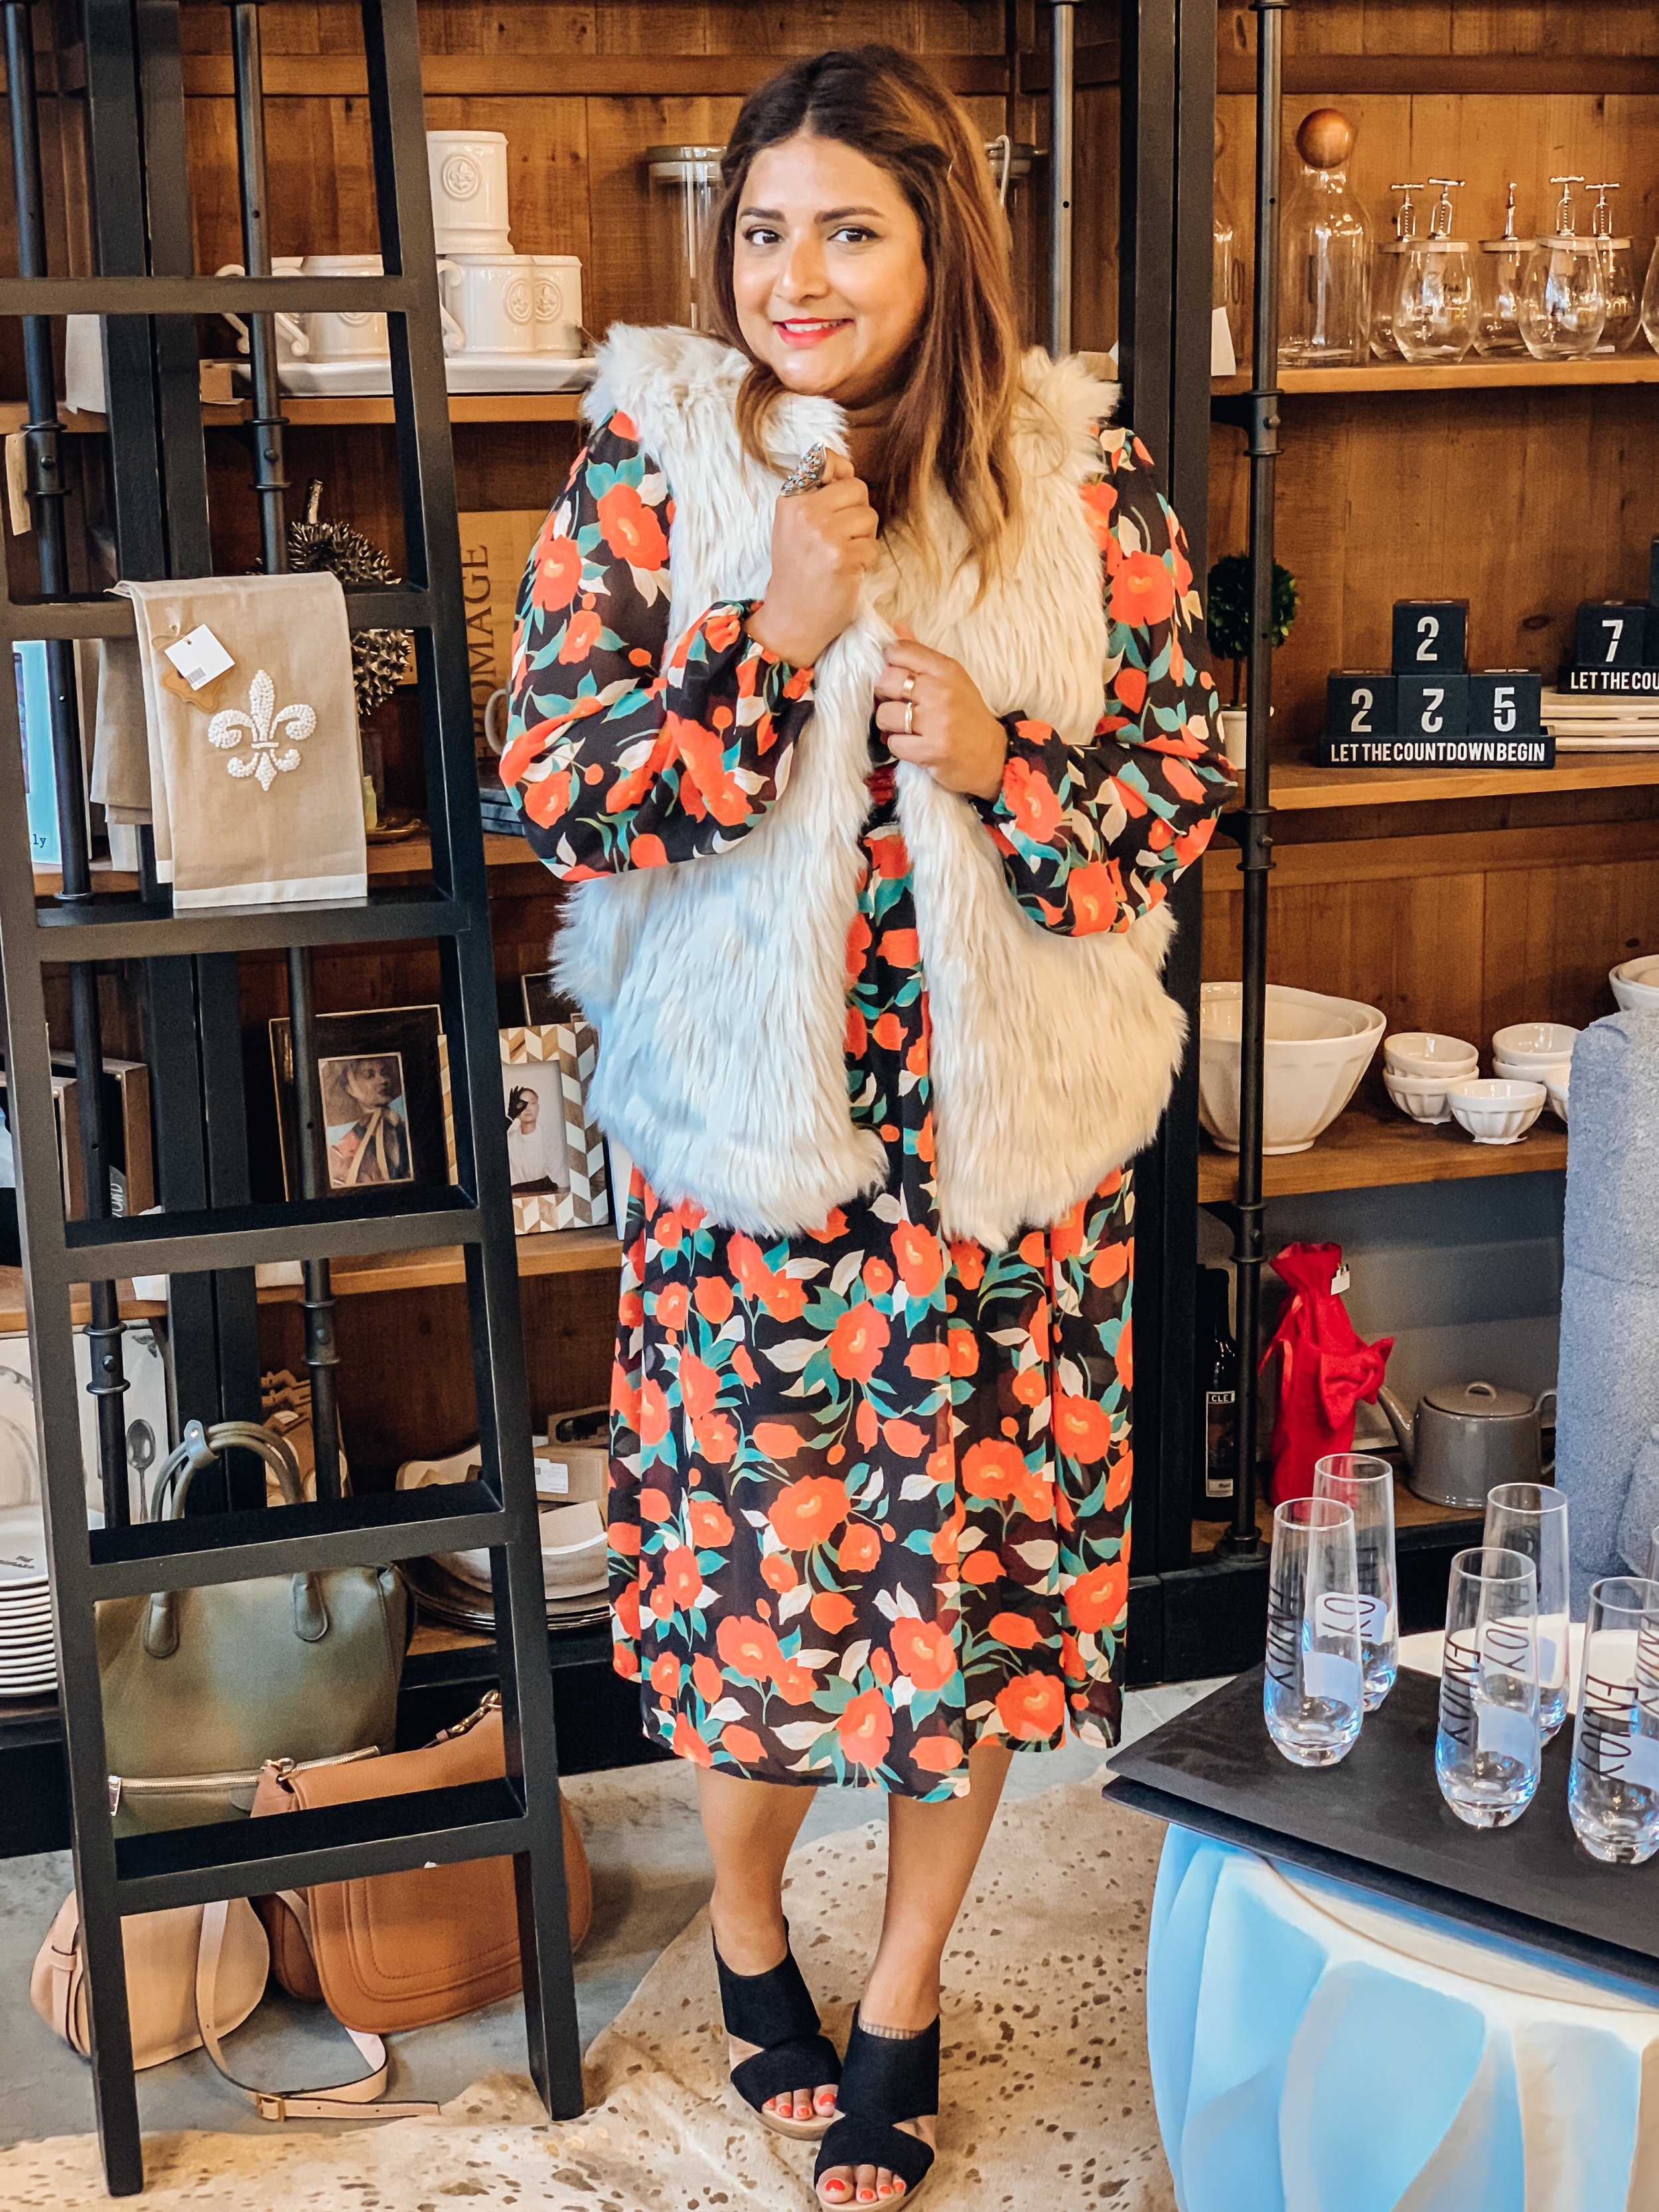 As night time temperatures start to drop, I love dark florals paired with faux fur vests for a cozy look. This vest is Dylan Los Angeles, available at Laura of Pembroke at Pinecrest. As of this writing, this vest retails for $155